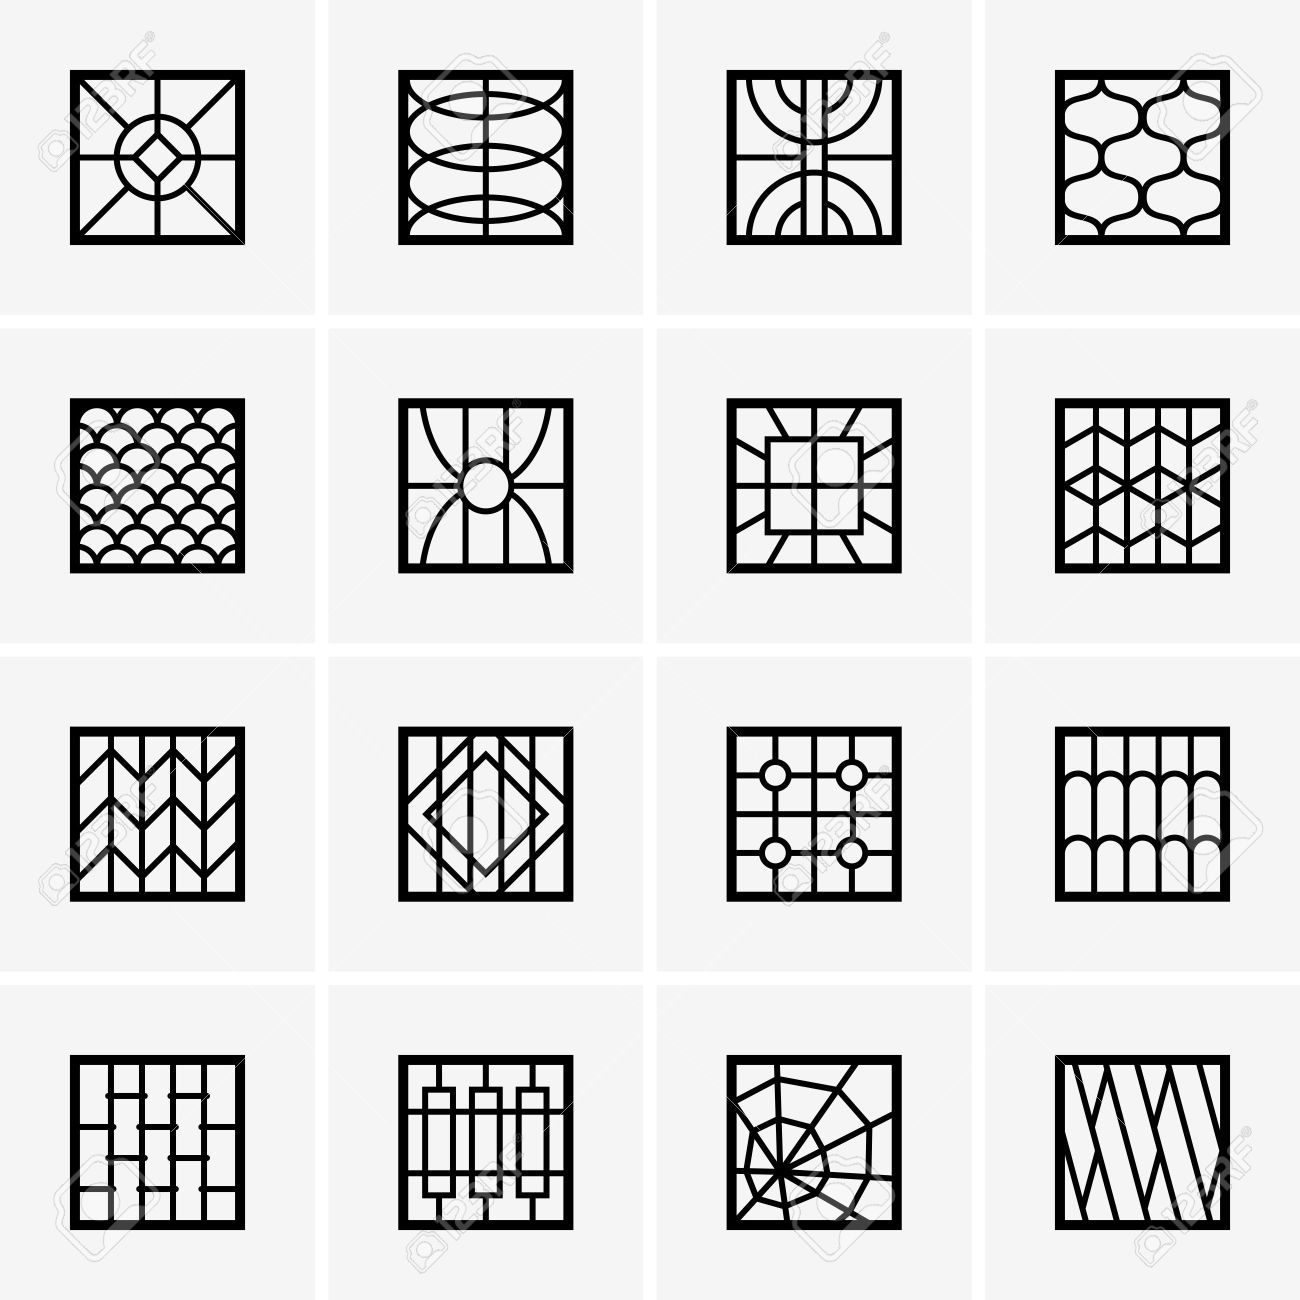 Modern window grills design google search self help for Metal window designs